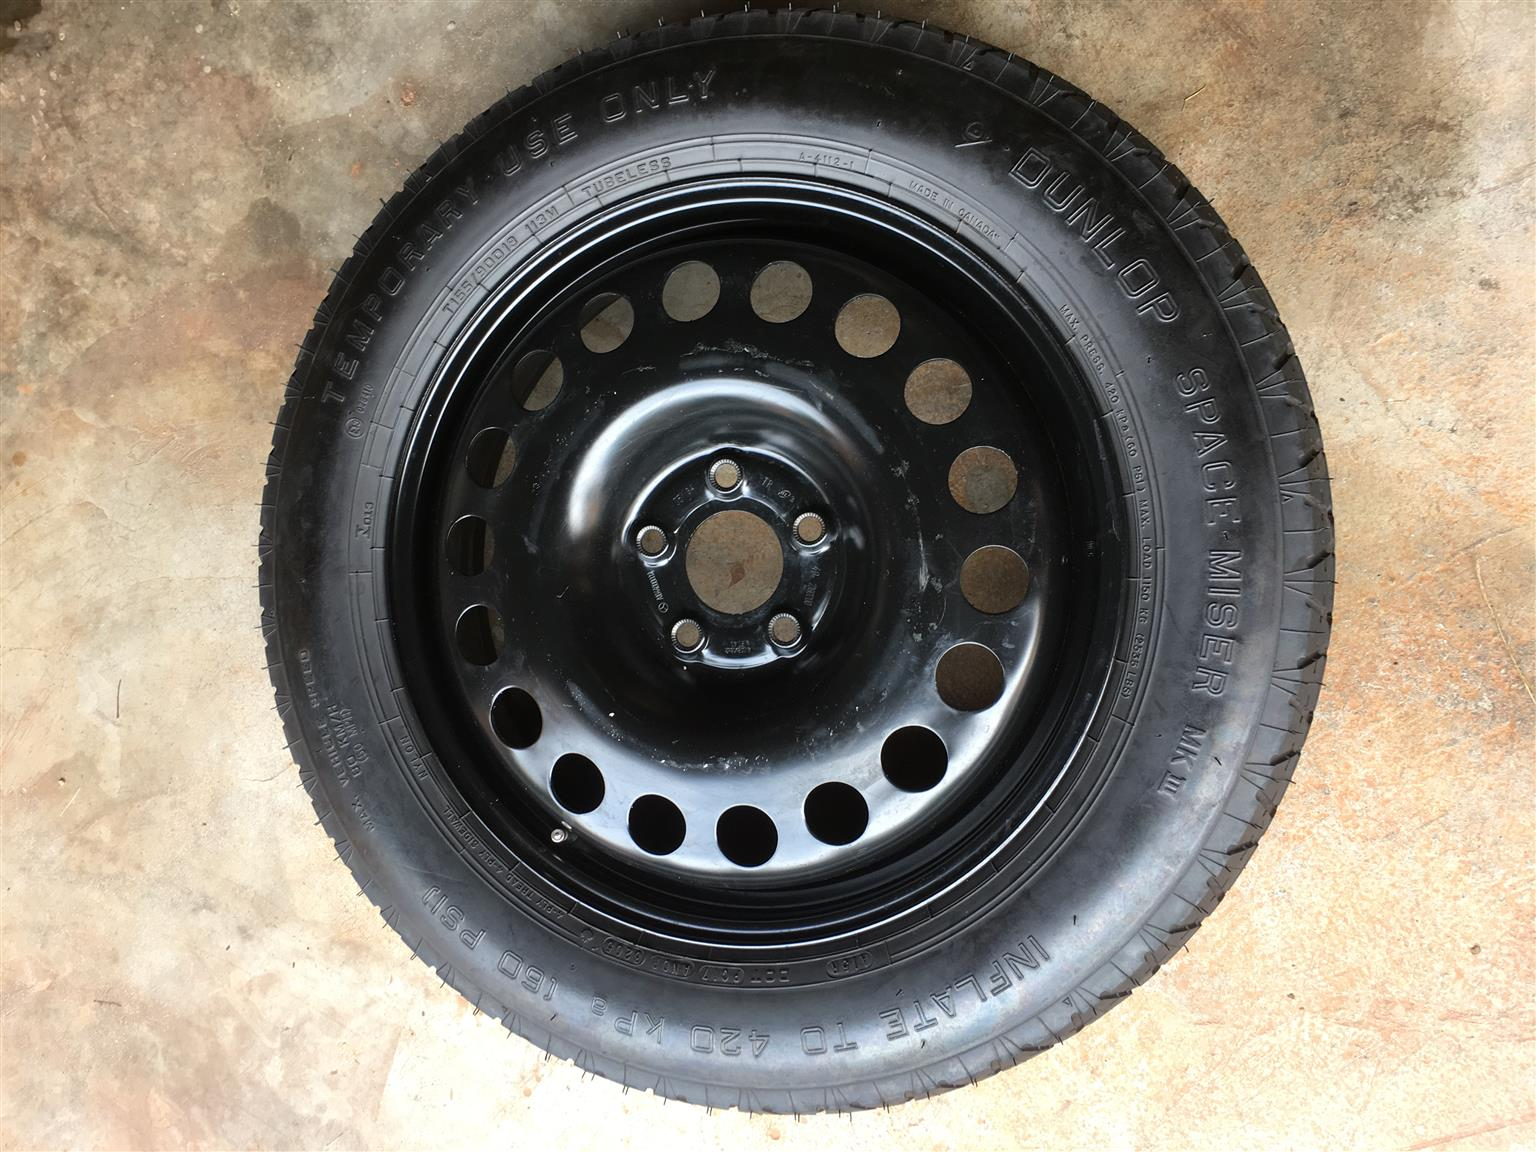 T155 90 D18 space saver spare wheel